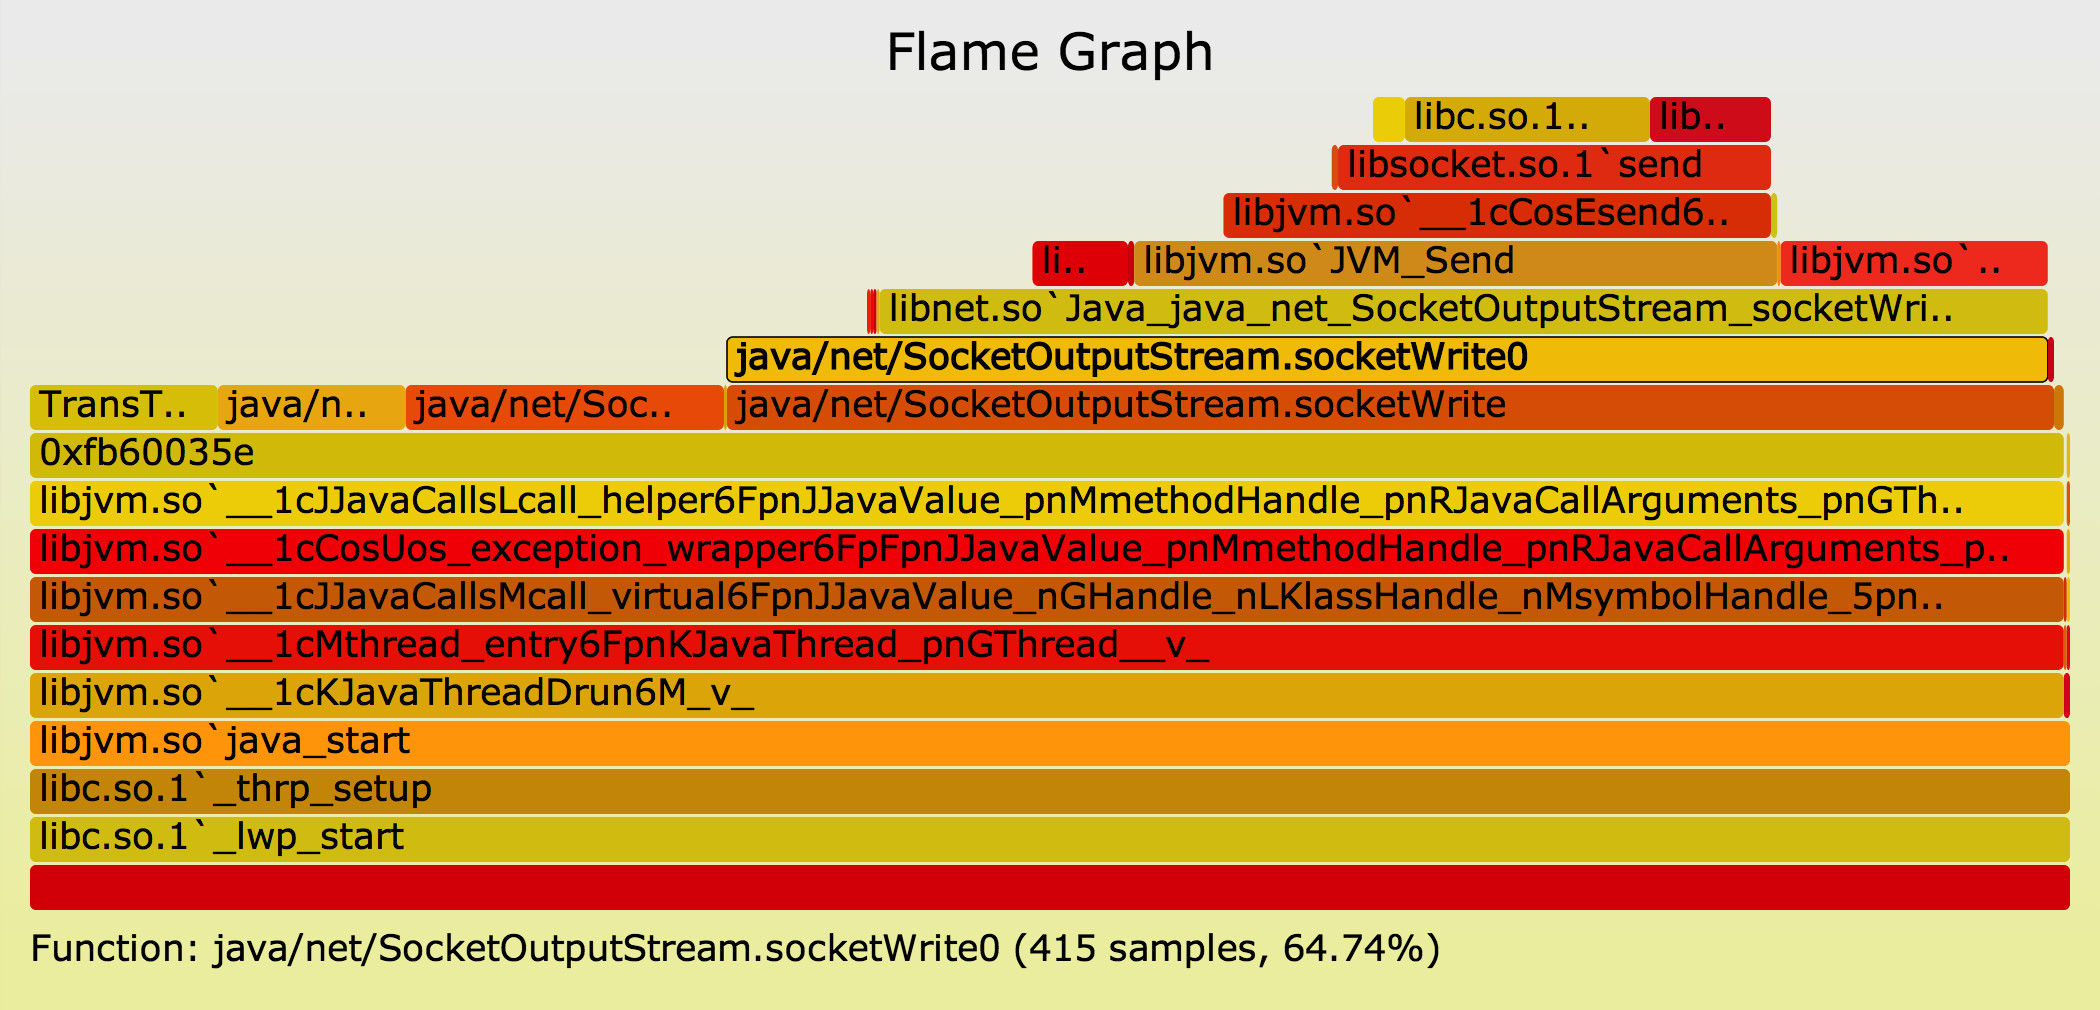 CPU Flame Graphs